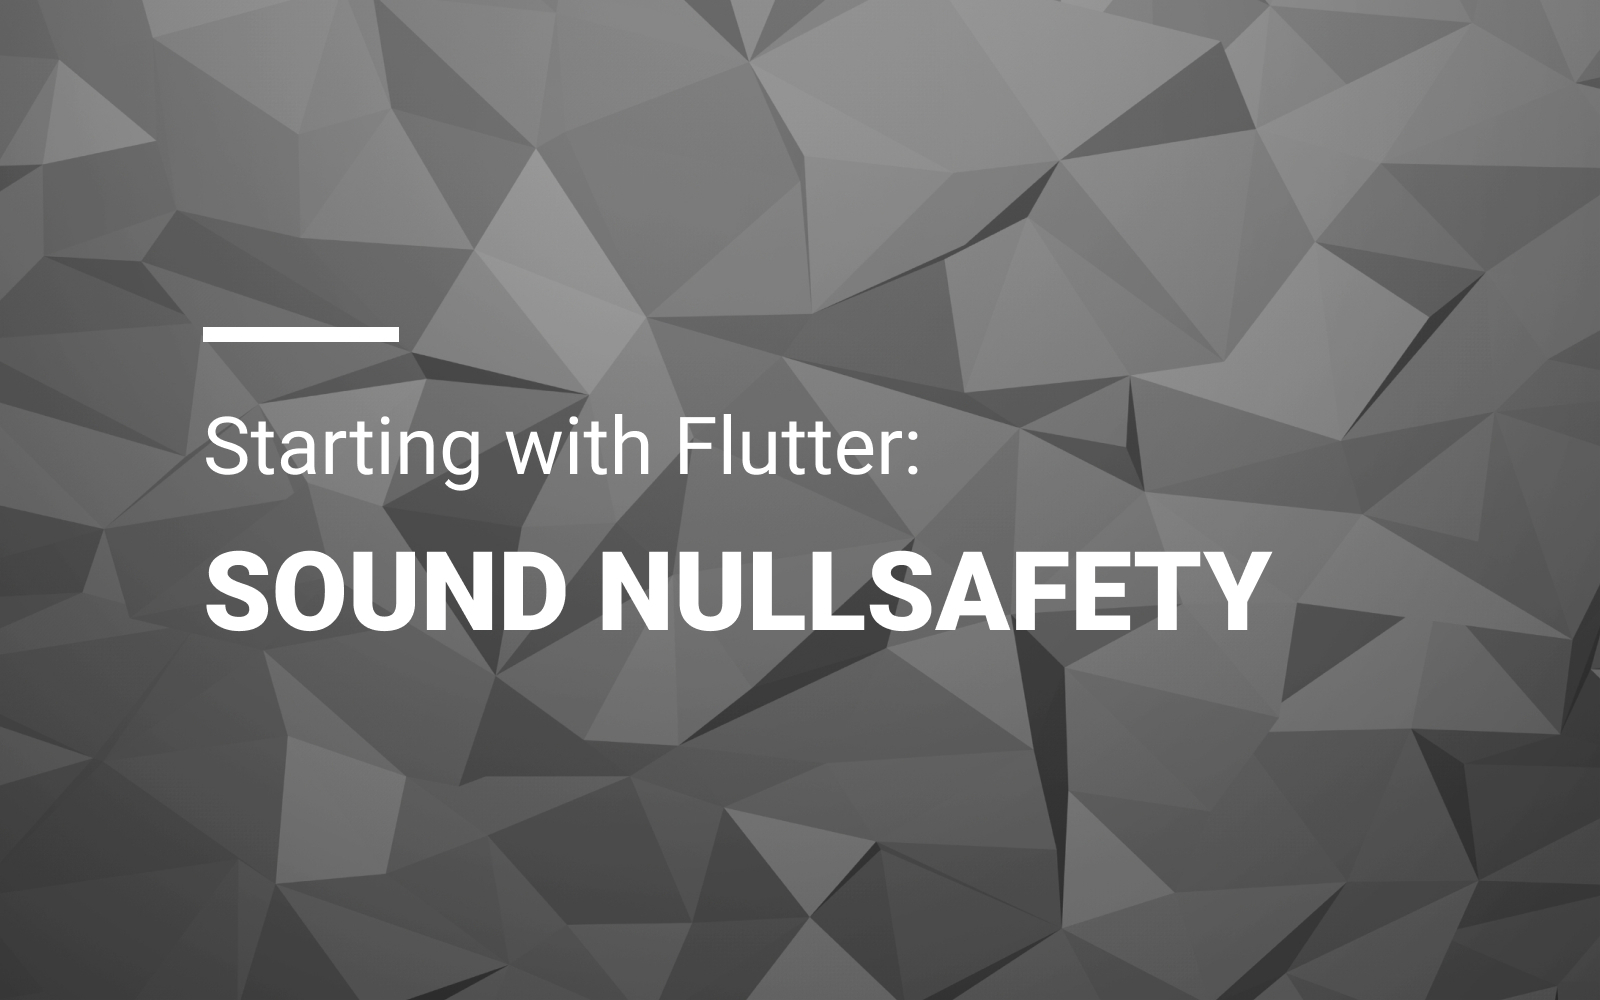 Starting with Flutter: Sound nullsafety